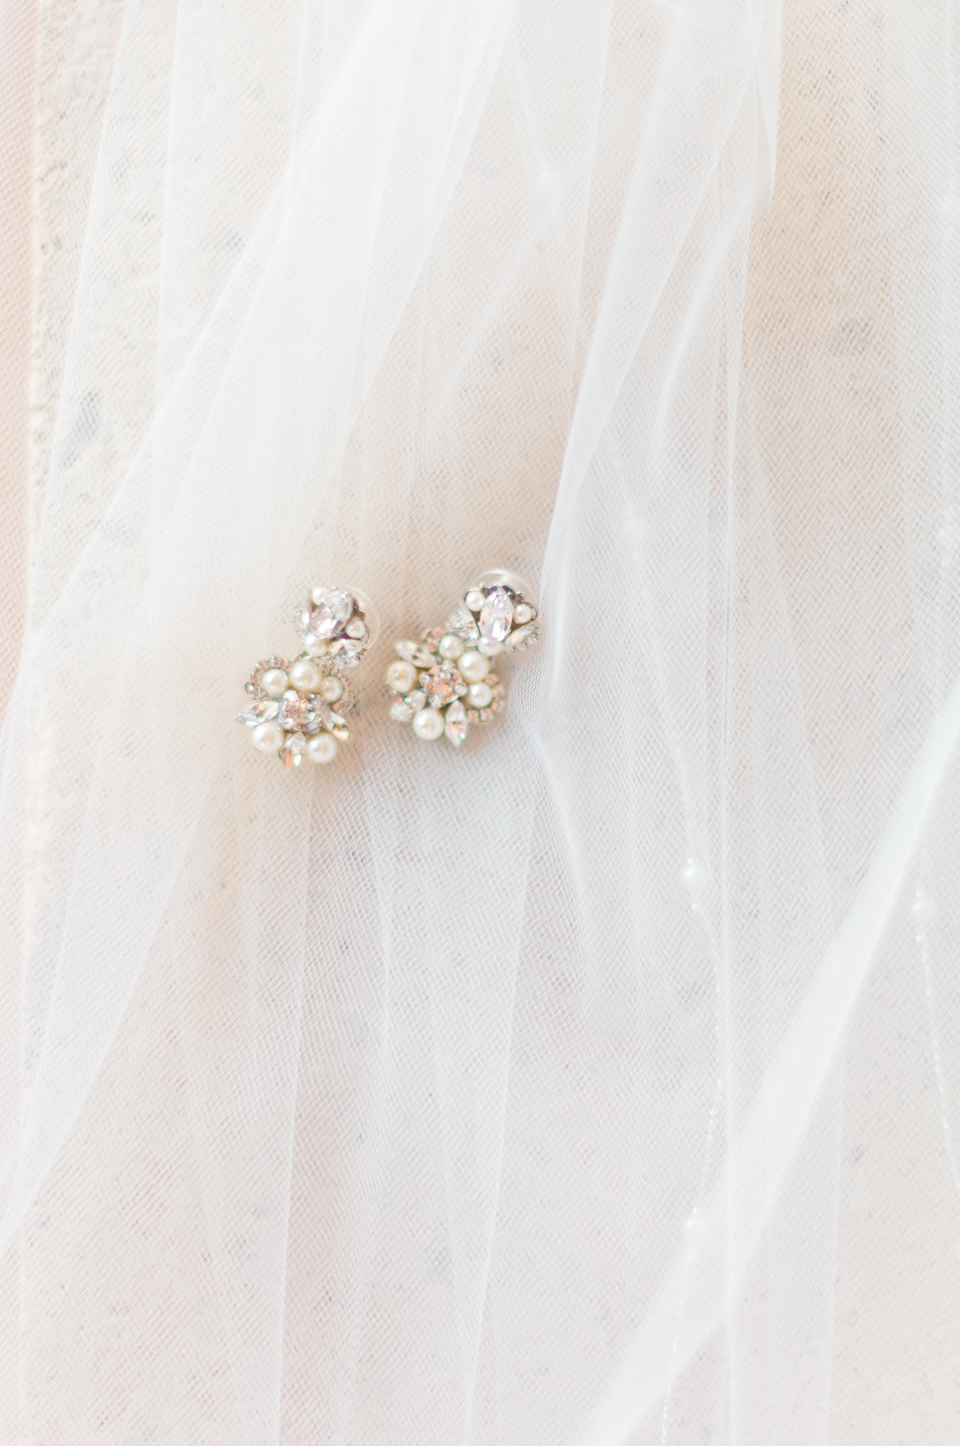 Image of diamond earrings laying on a bridal veil at TPC Sawgrass in Ponte Vedra, Florida